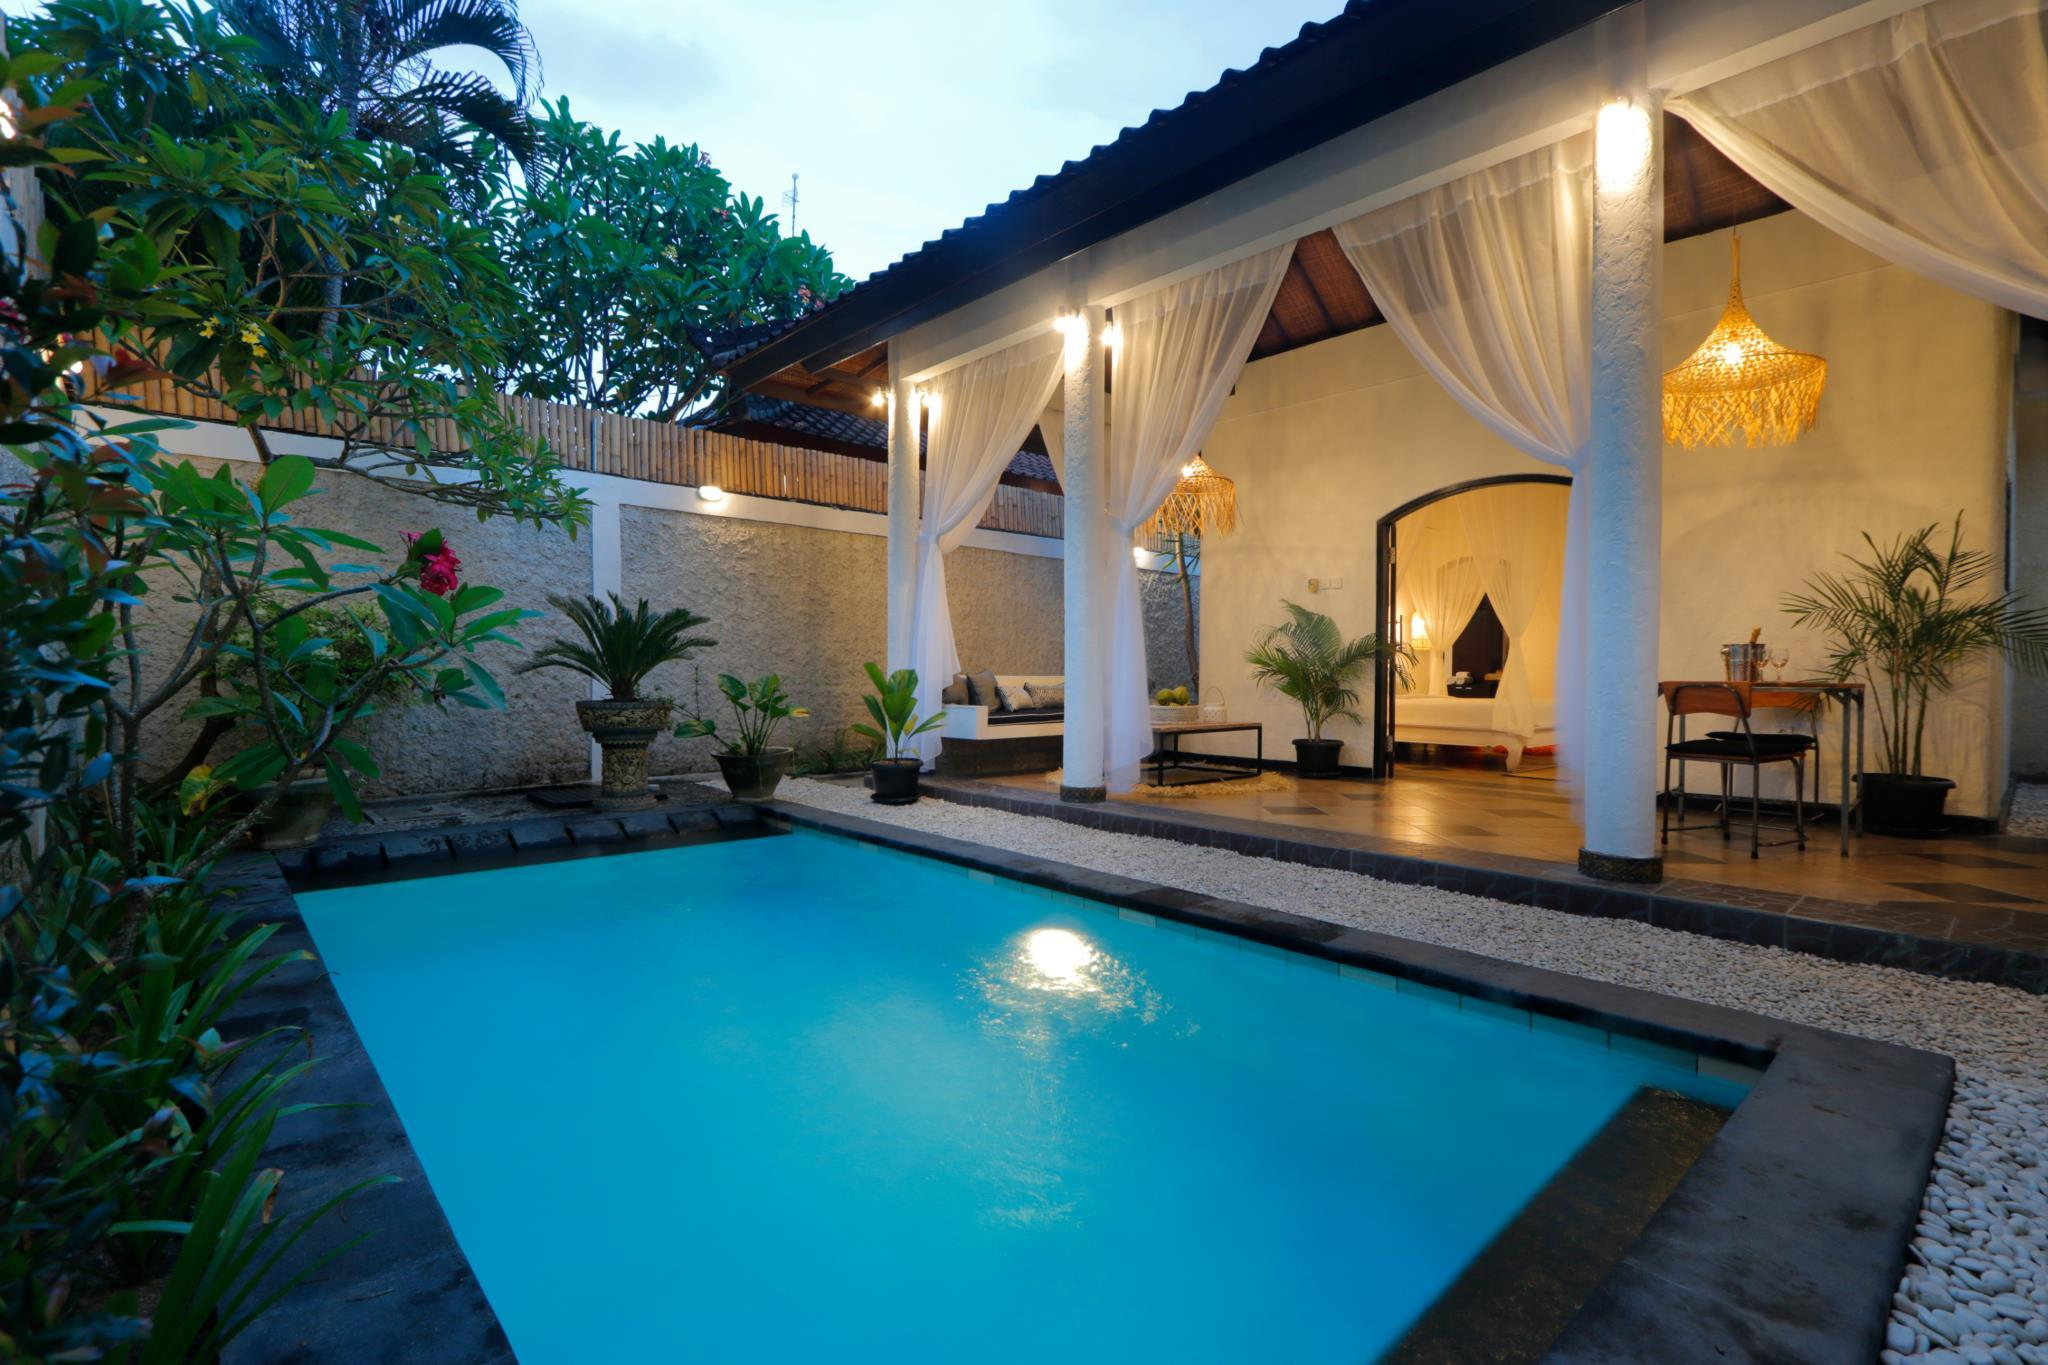 Singgah 4 One Bedroom Villa With Private Pool